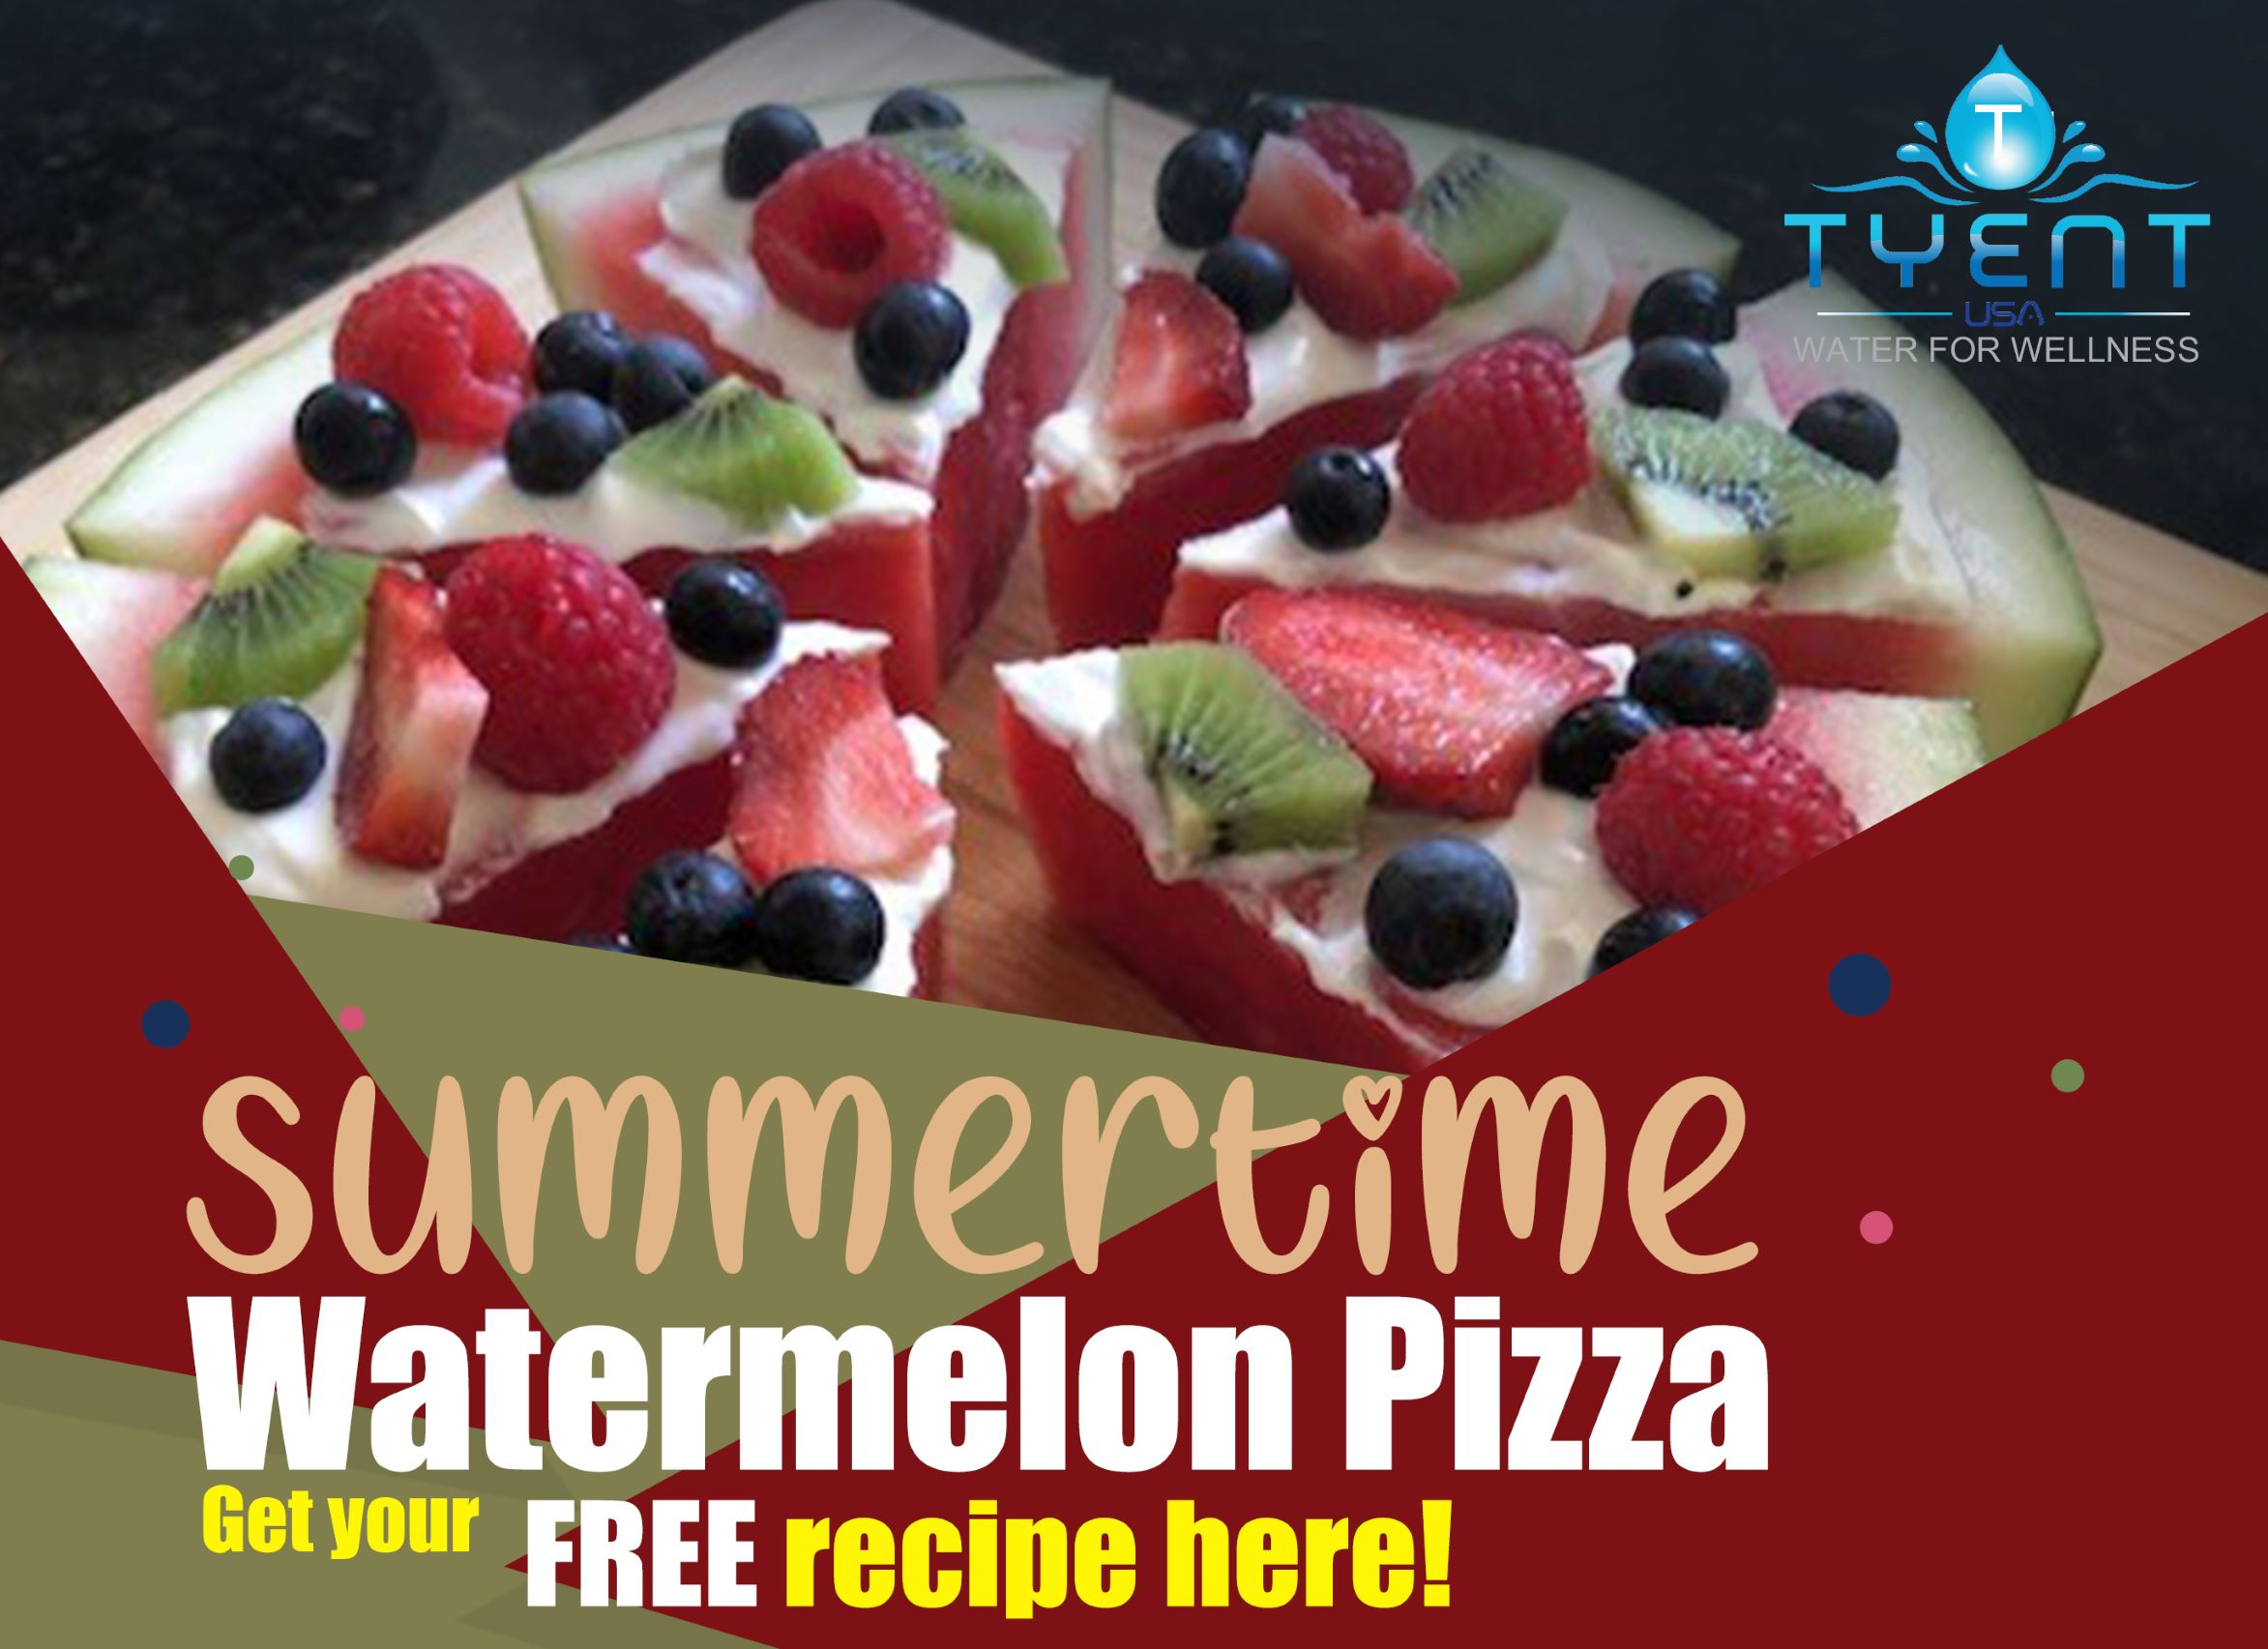 Summertime Watermelon Pizza